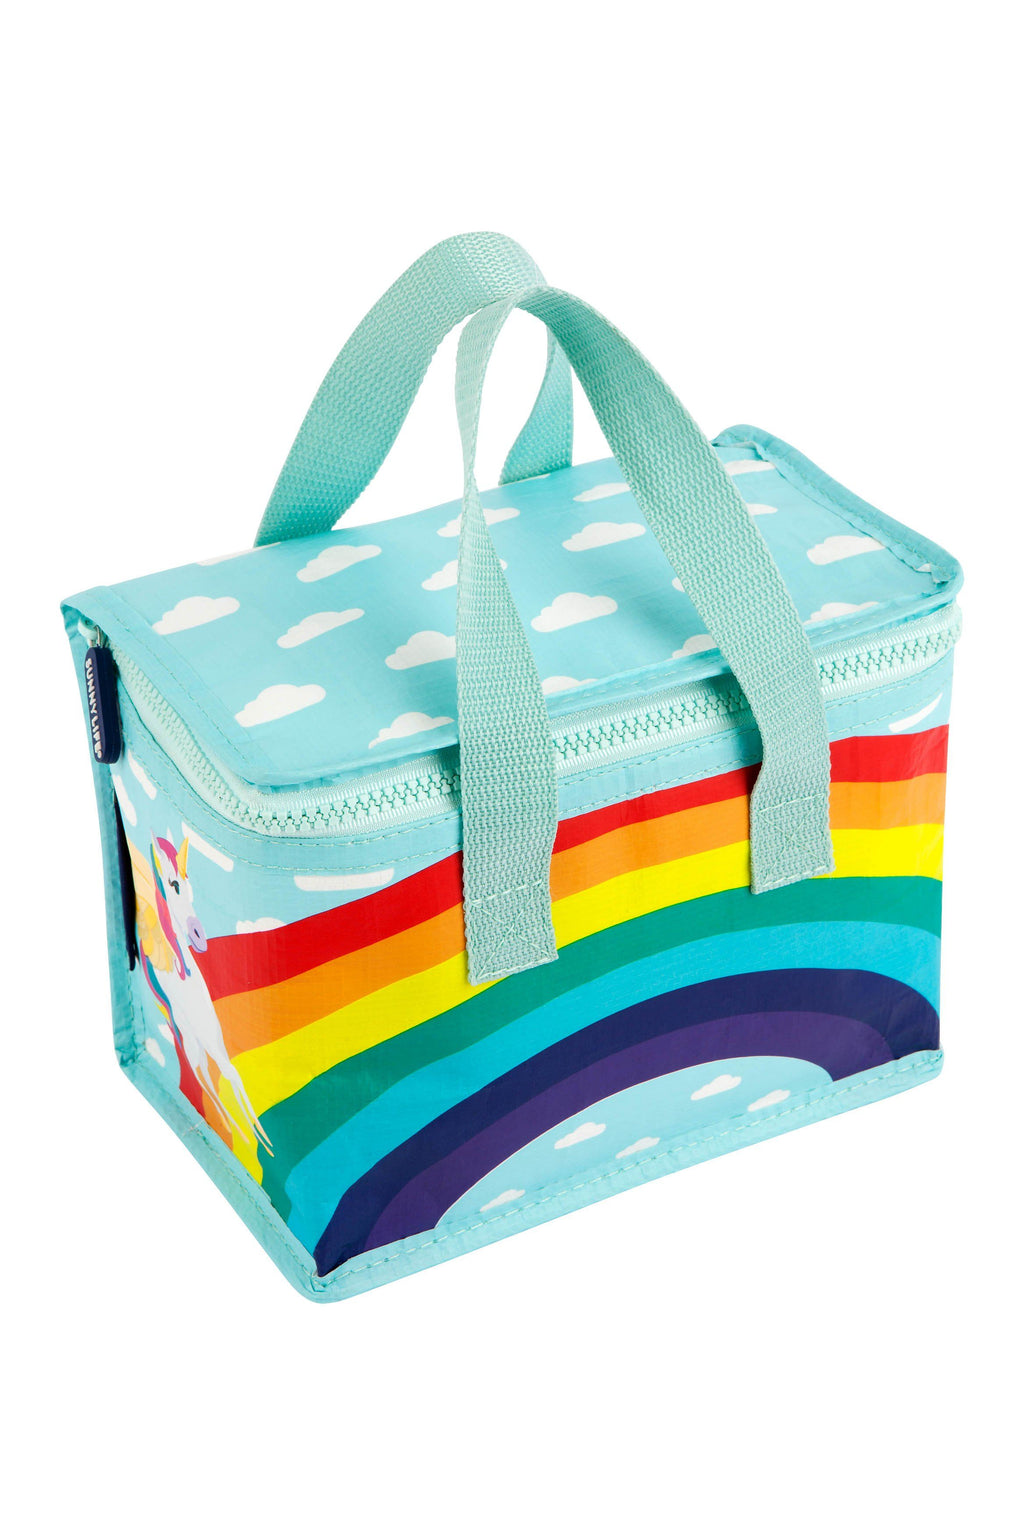 Wonderland Lunch Tote - Revelry Goods